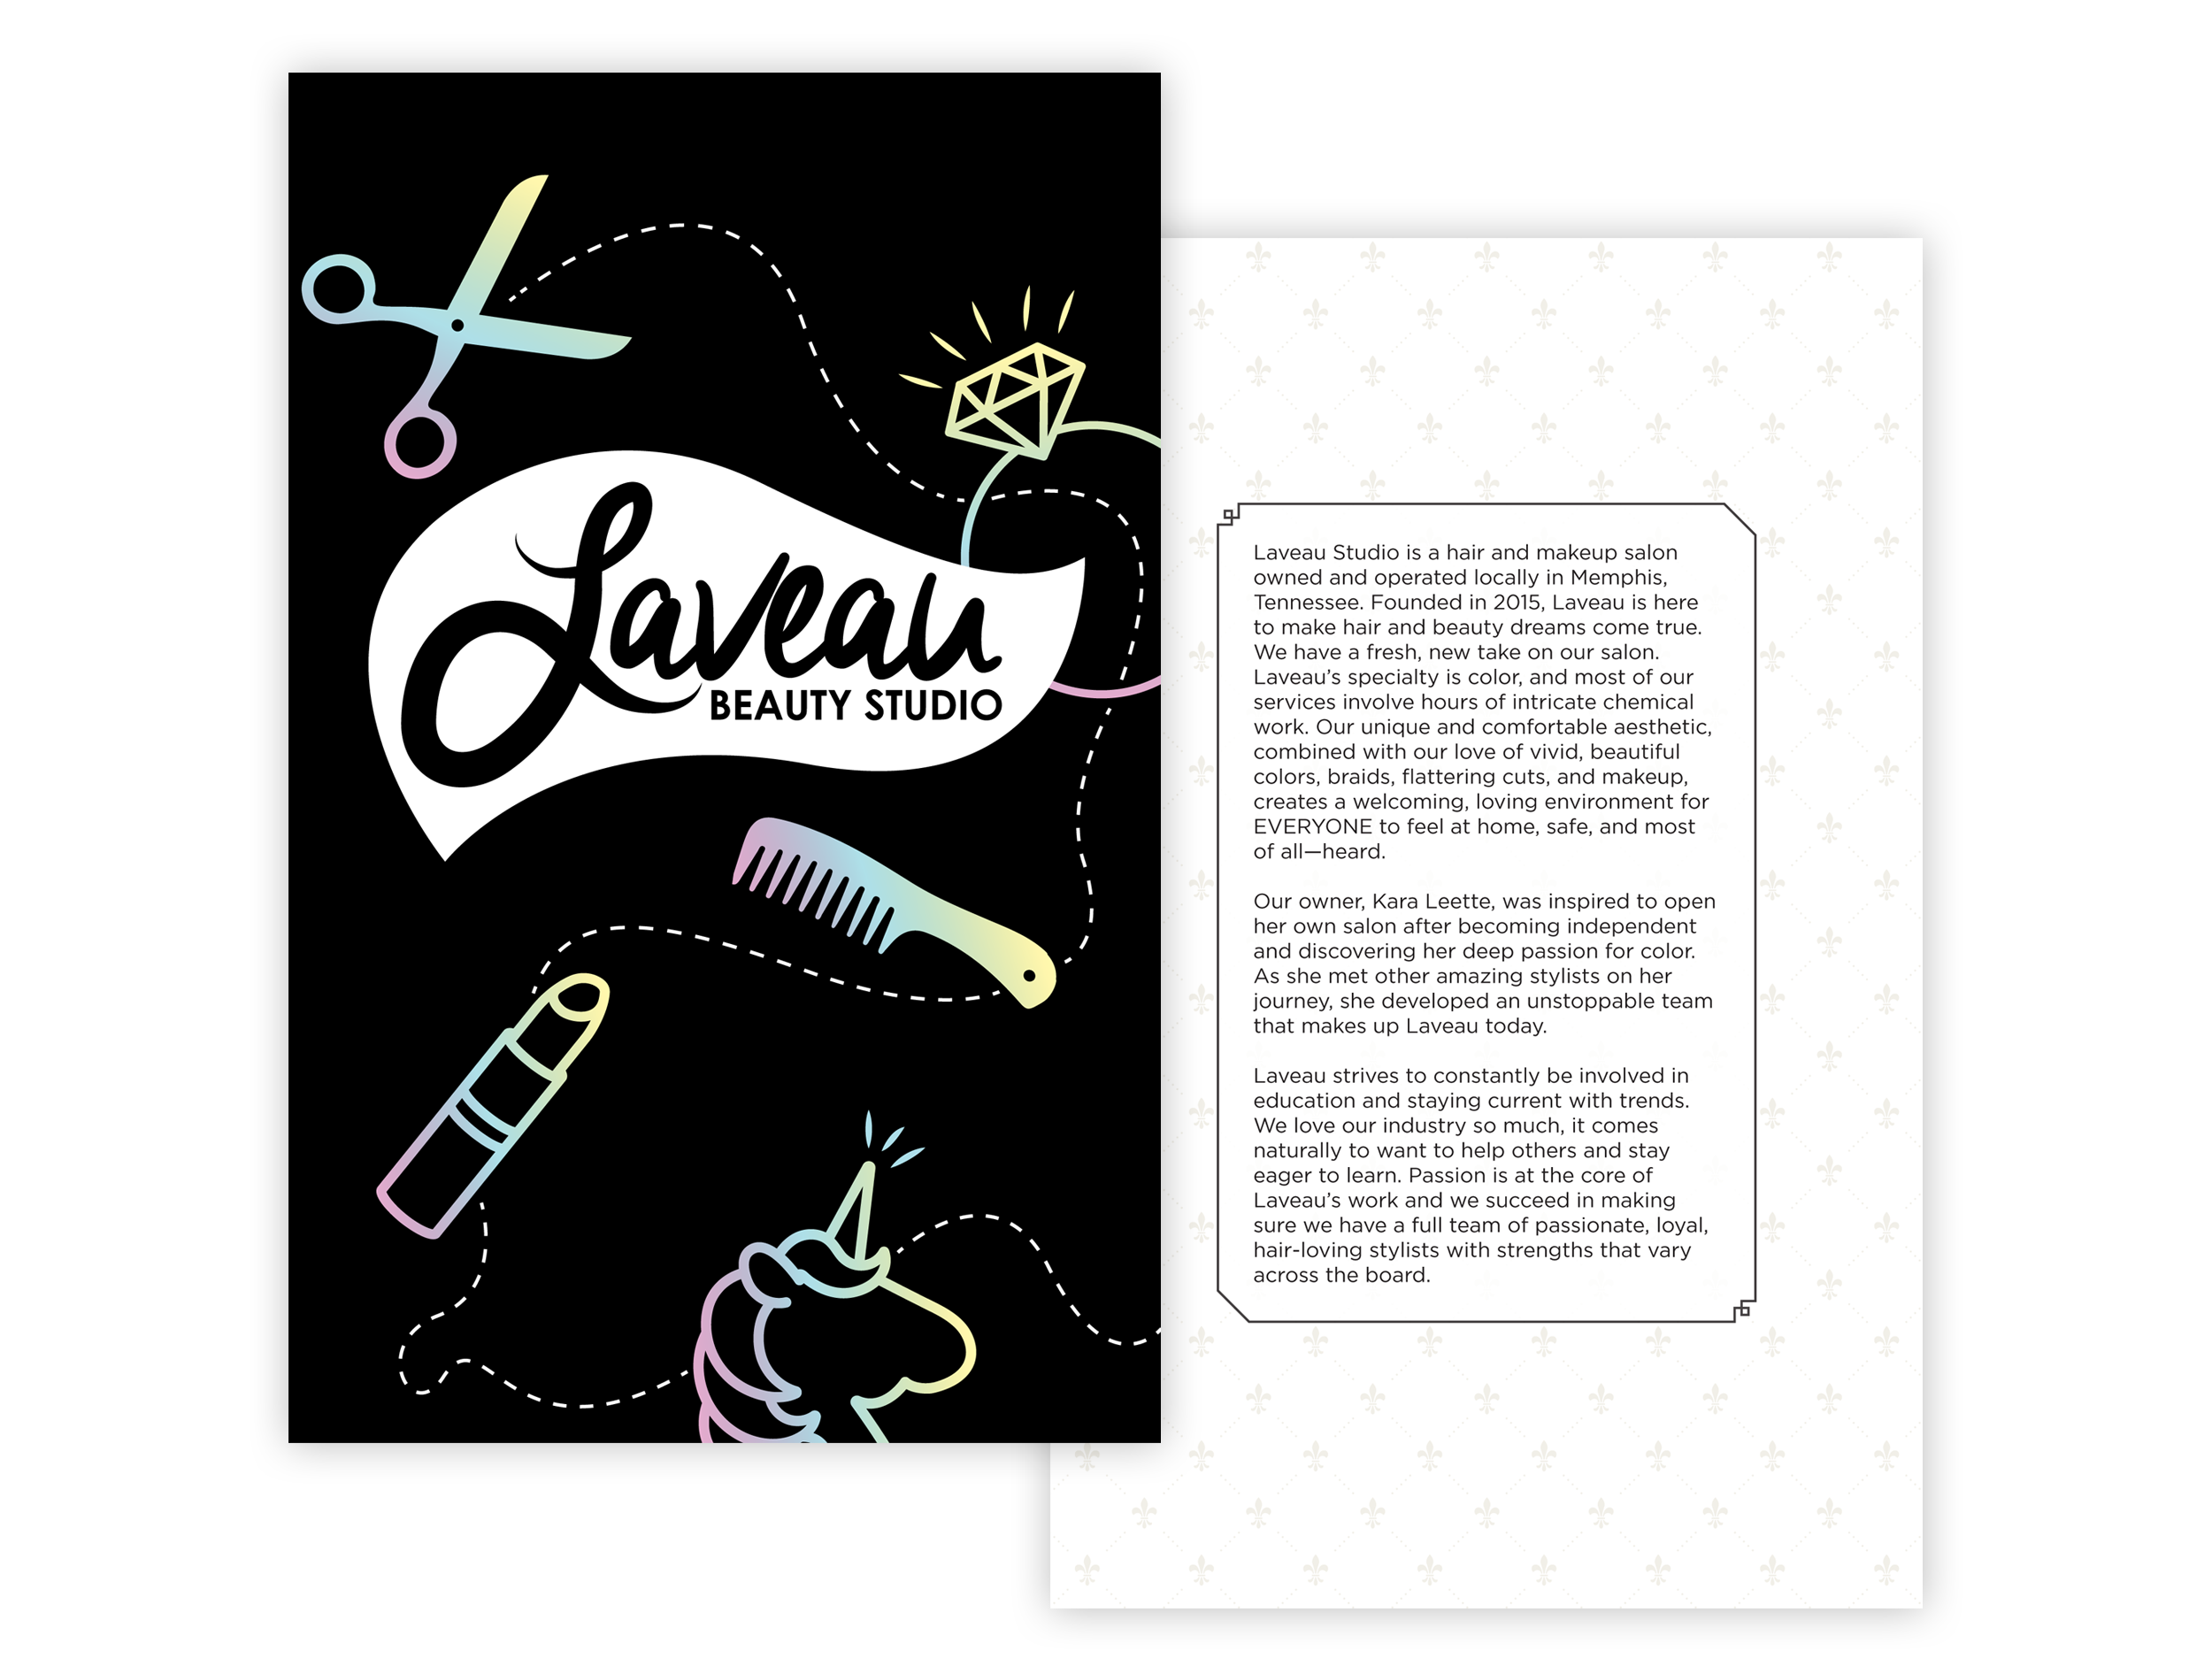 Laveau-Beauty-Studio_Menu-Design_Print-Design_Dreamcapture_Memphis-TN